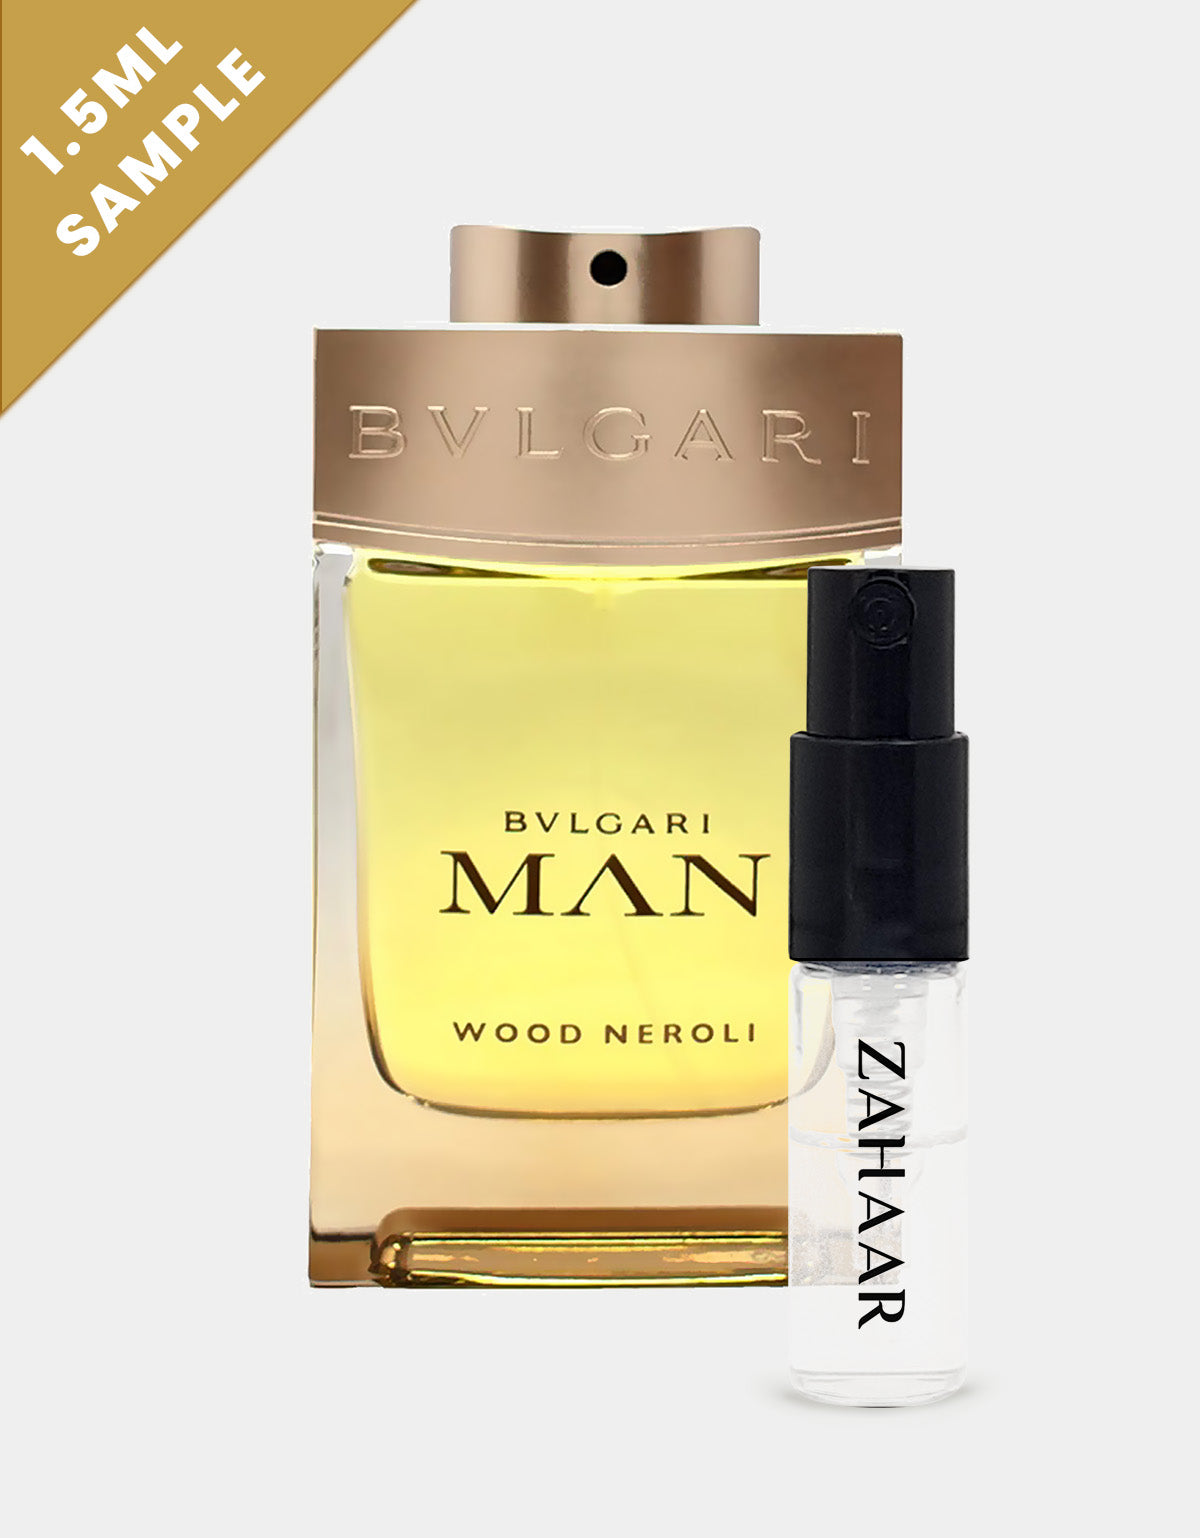 Man Wood Neroli - 1.5 ml Sample